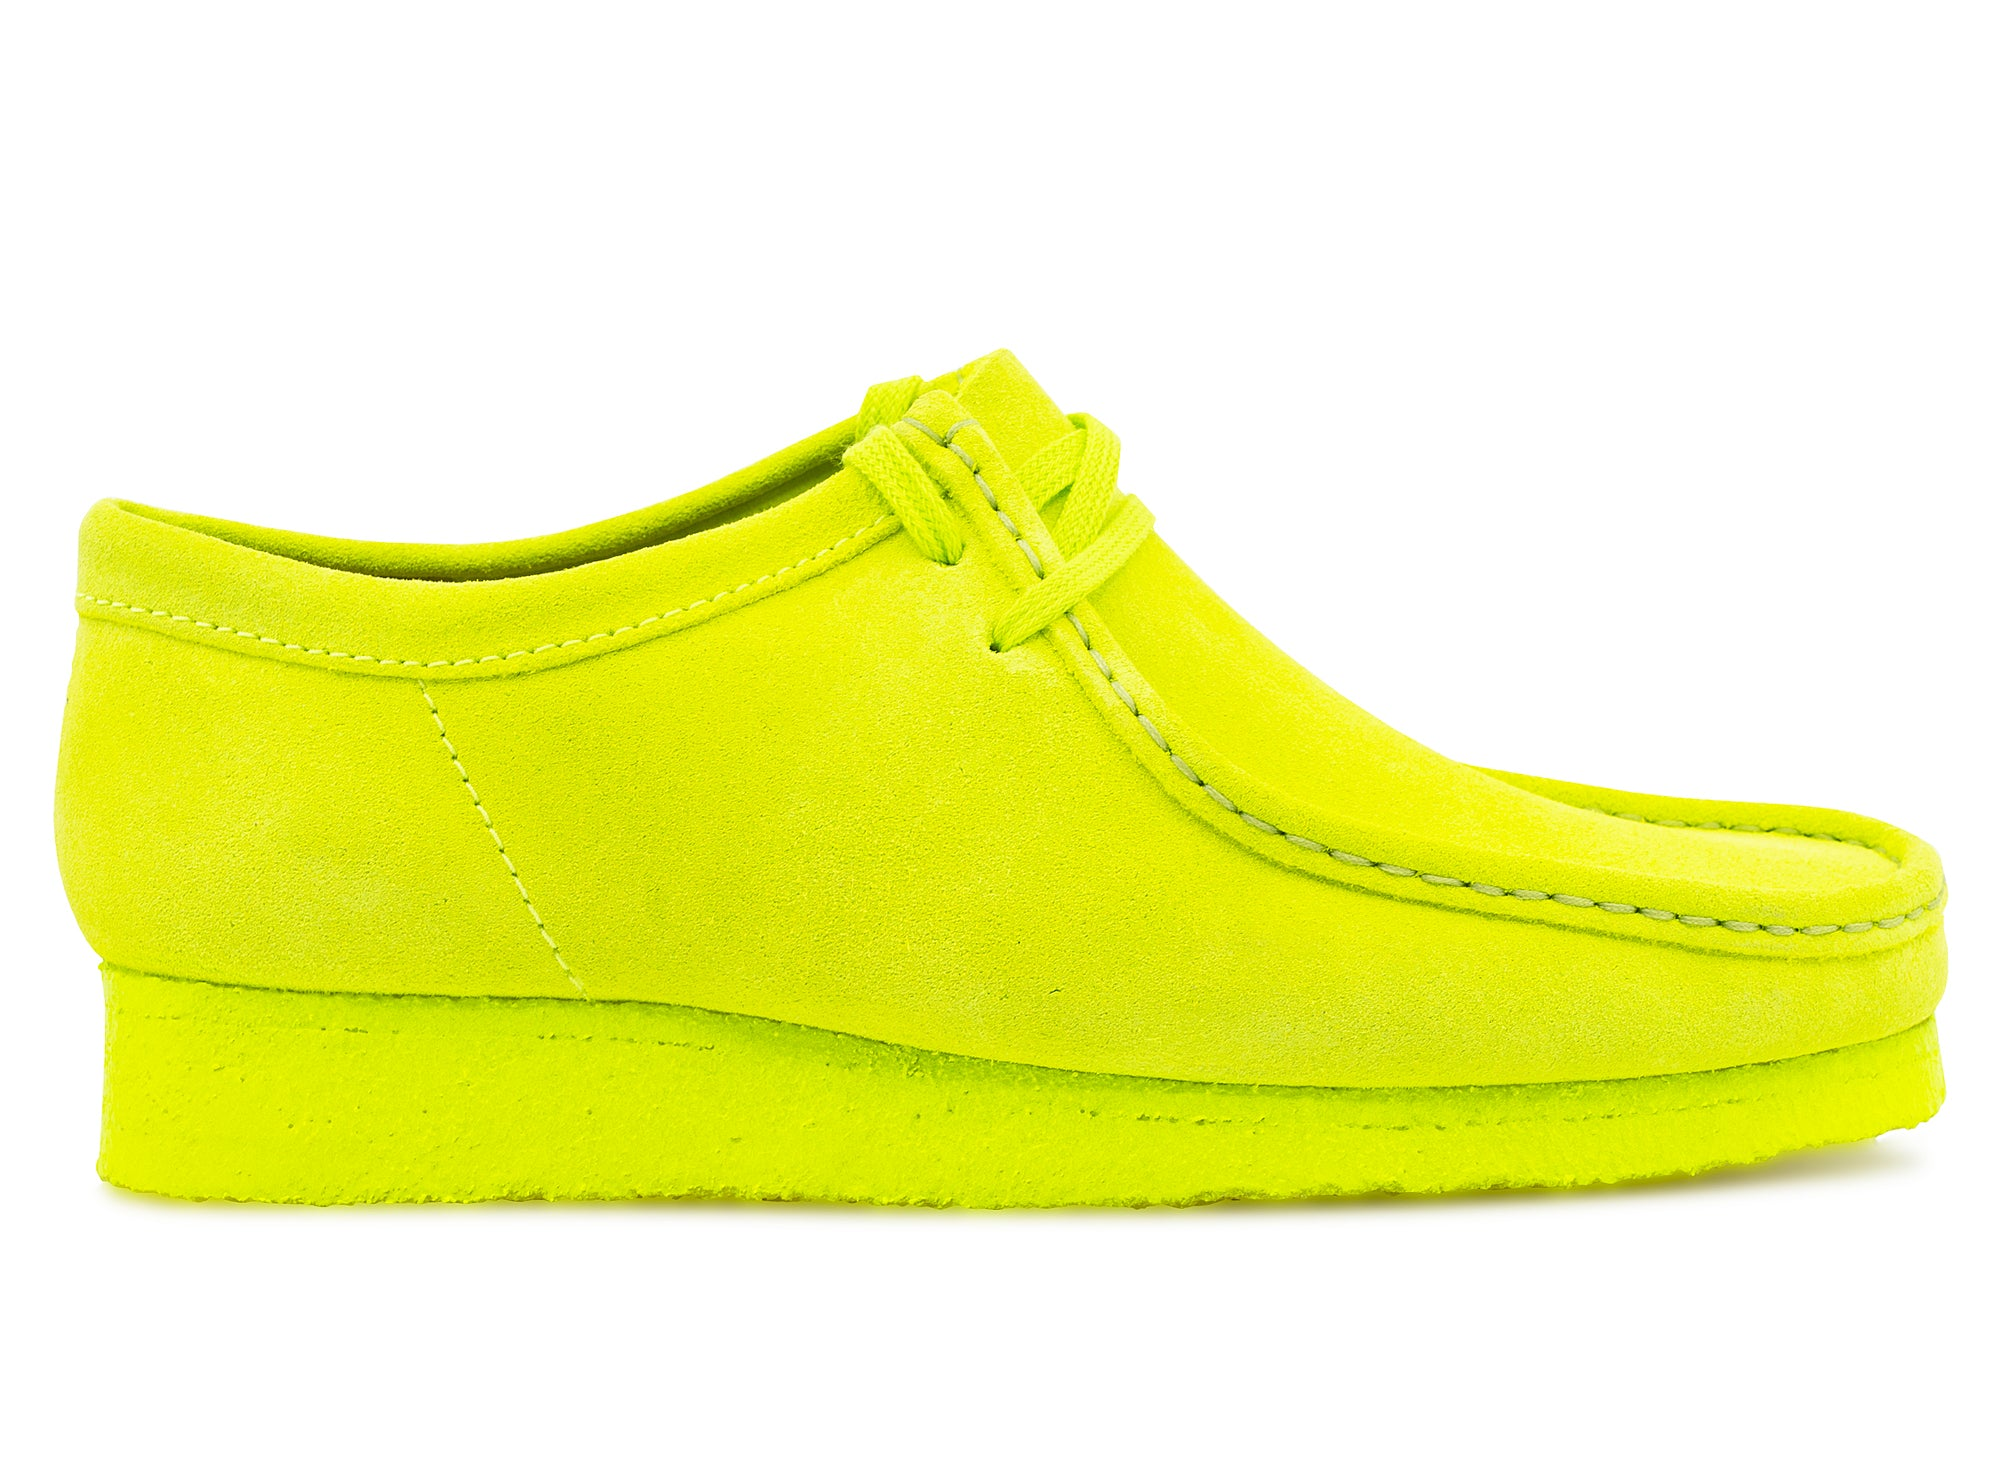 Clarks Wallabee 'Lime' xld